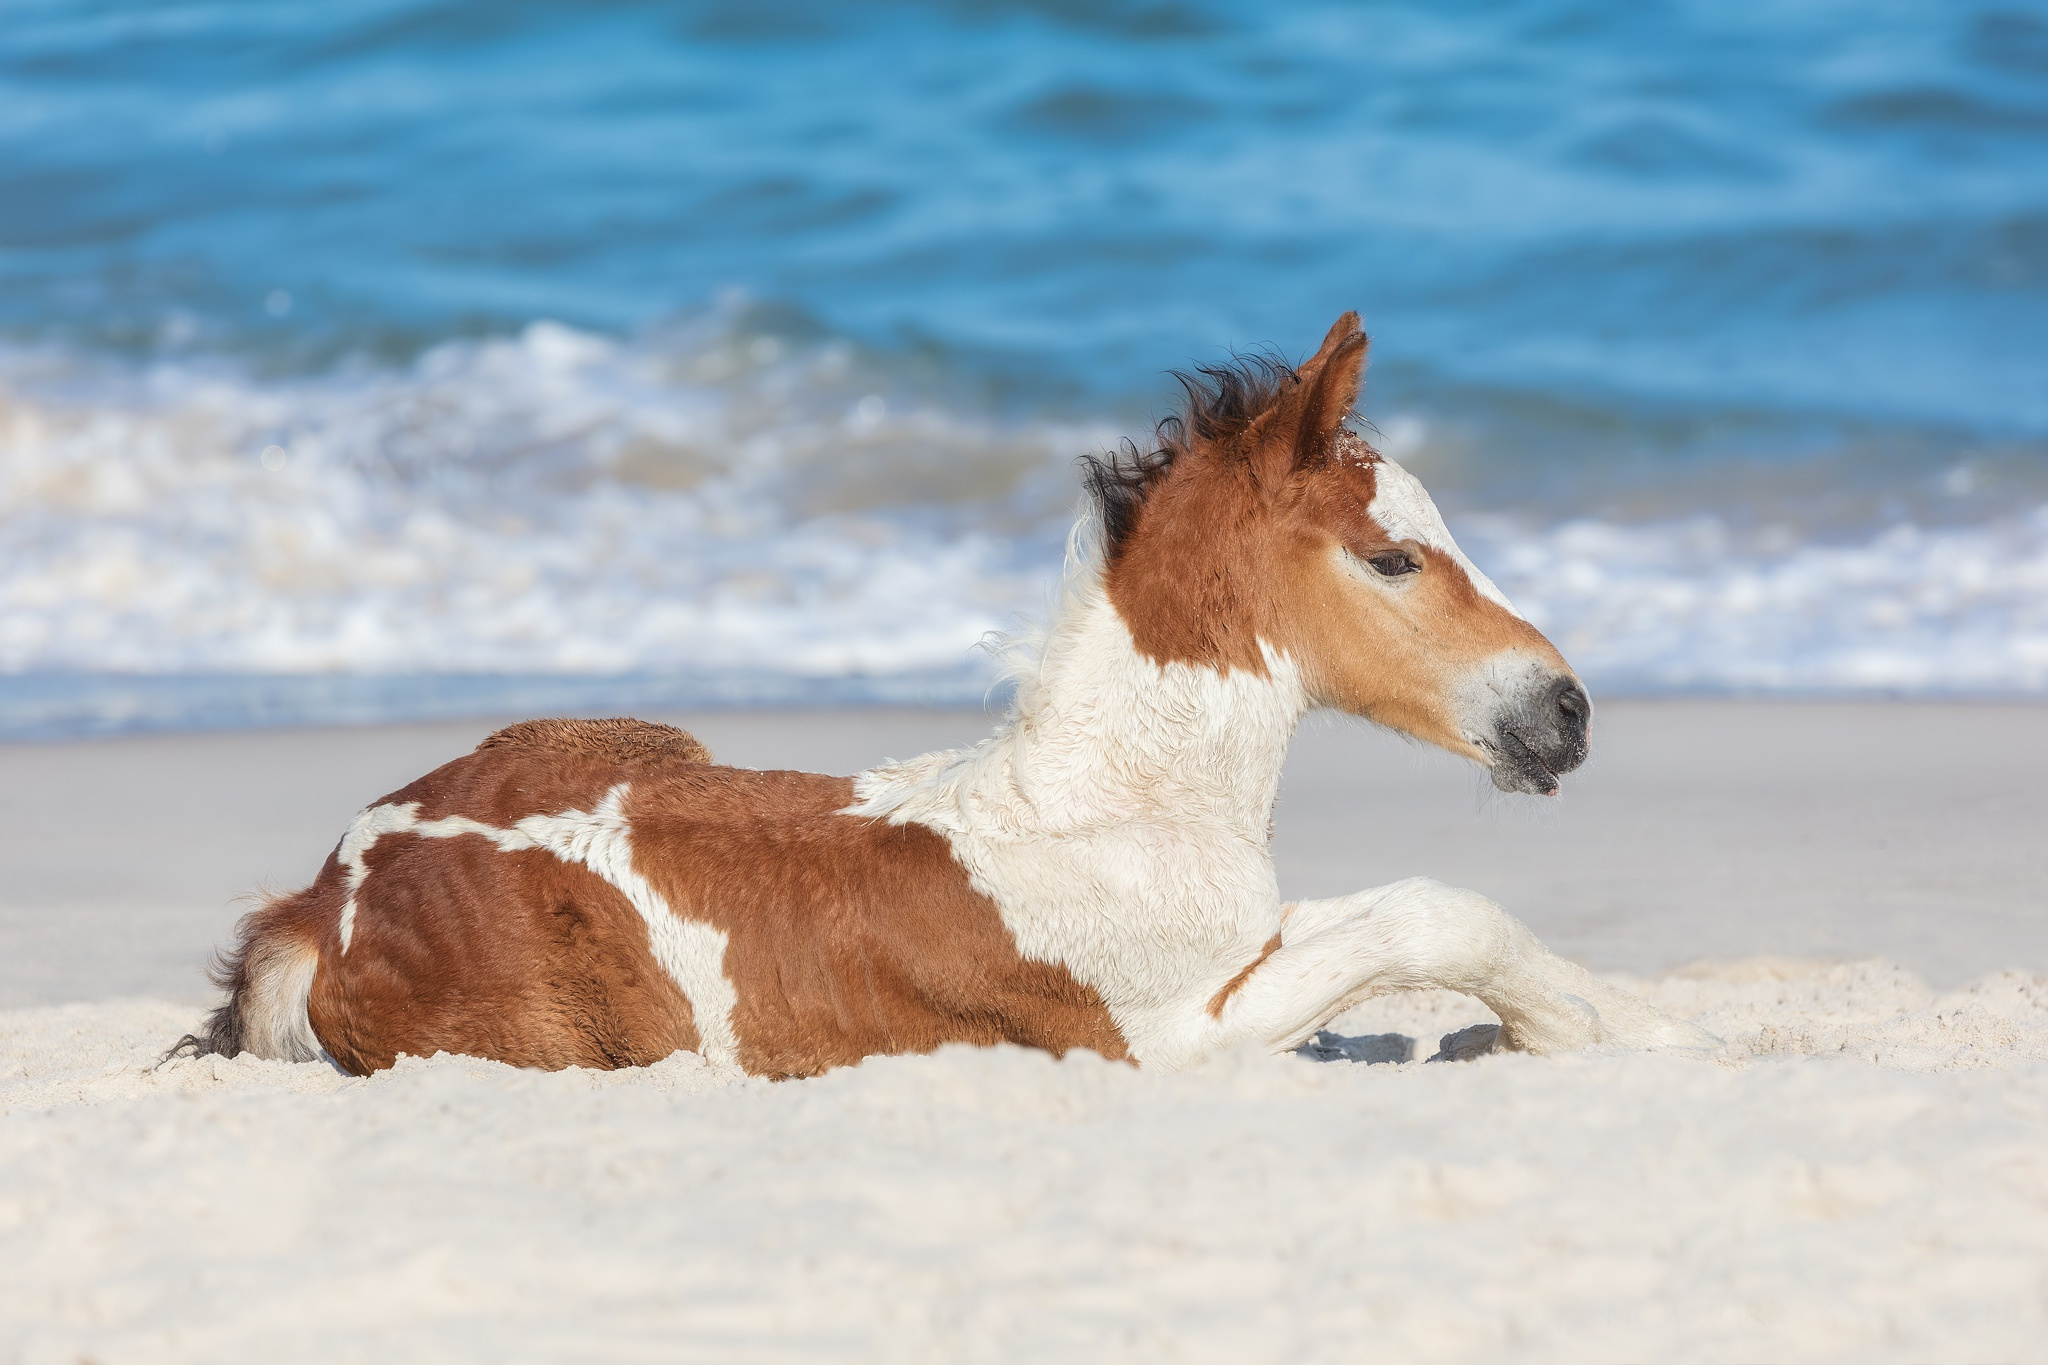 Baby Animal Horse Foal Wallpaper And Background Foal 1963569 Hd Wallpaper Backgrounds Download